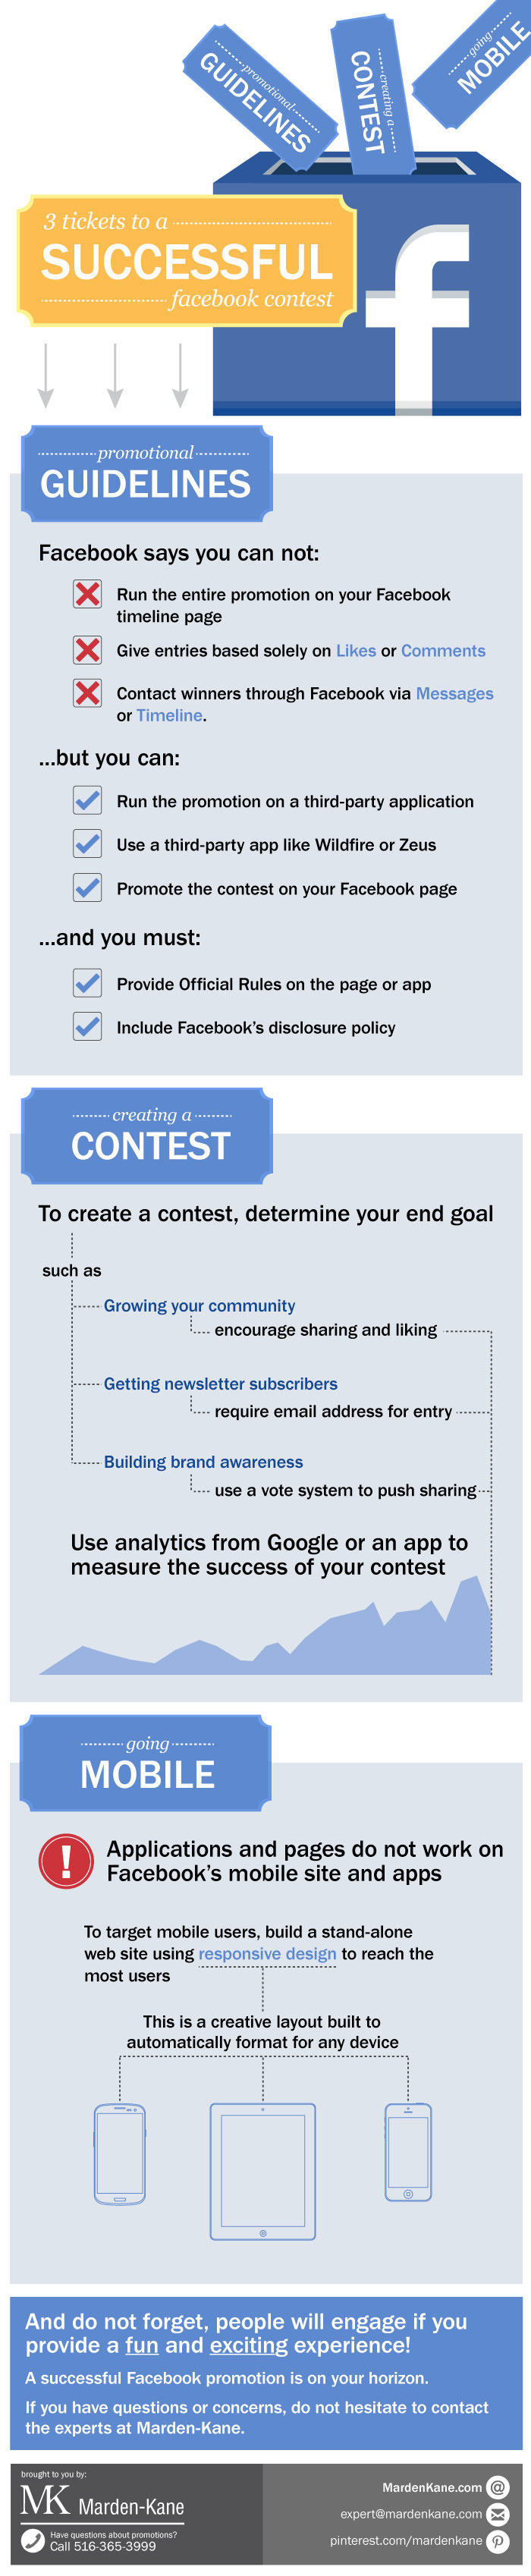 INFOGRAPHIC: 3 Tickets to Facebook Contest Success